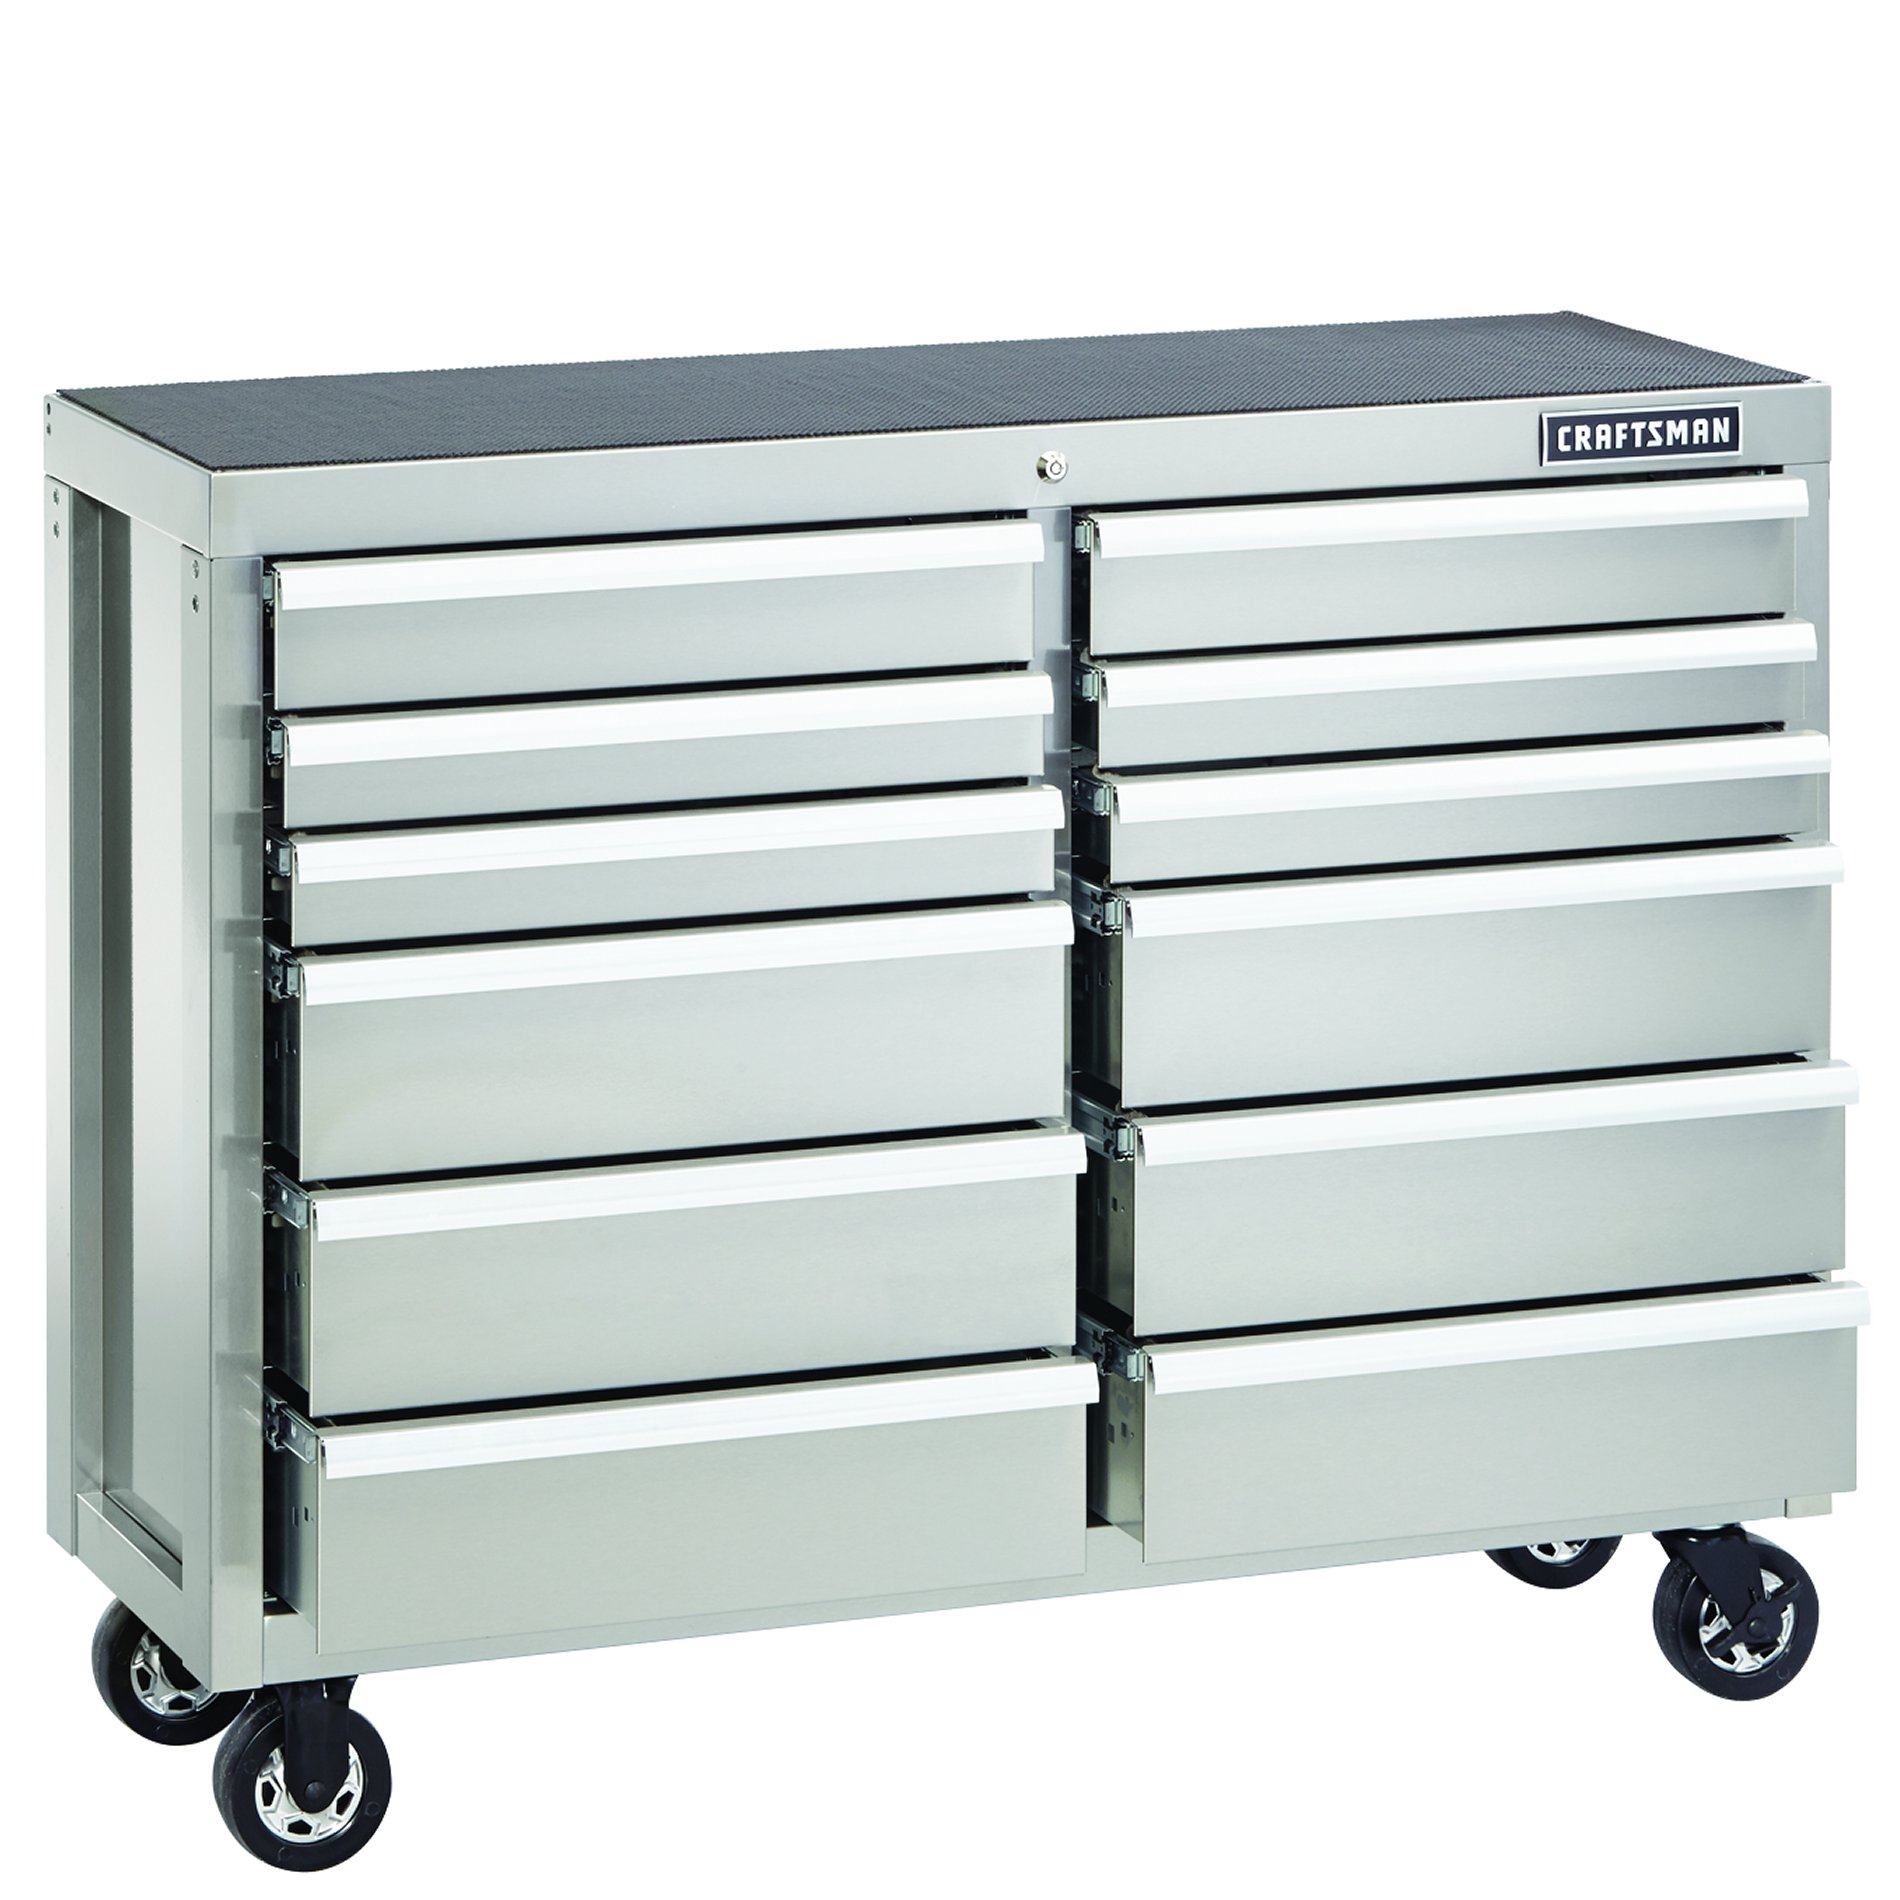 Craftsman 52-Inch 12-Drawer Premium Heavy-Duty Rolling Cabinet- Stainless Steel